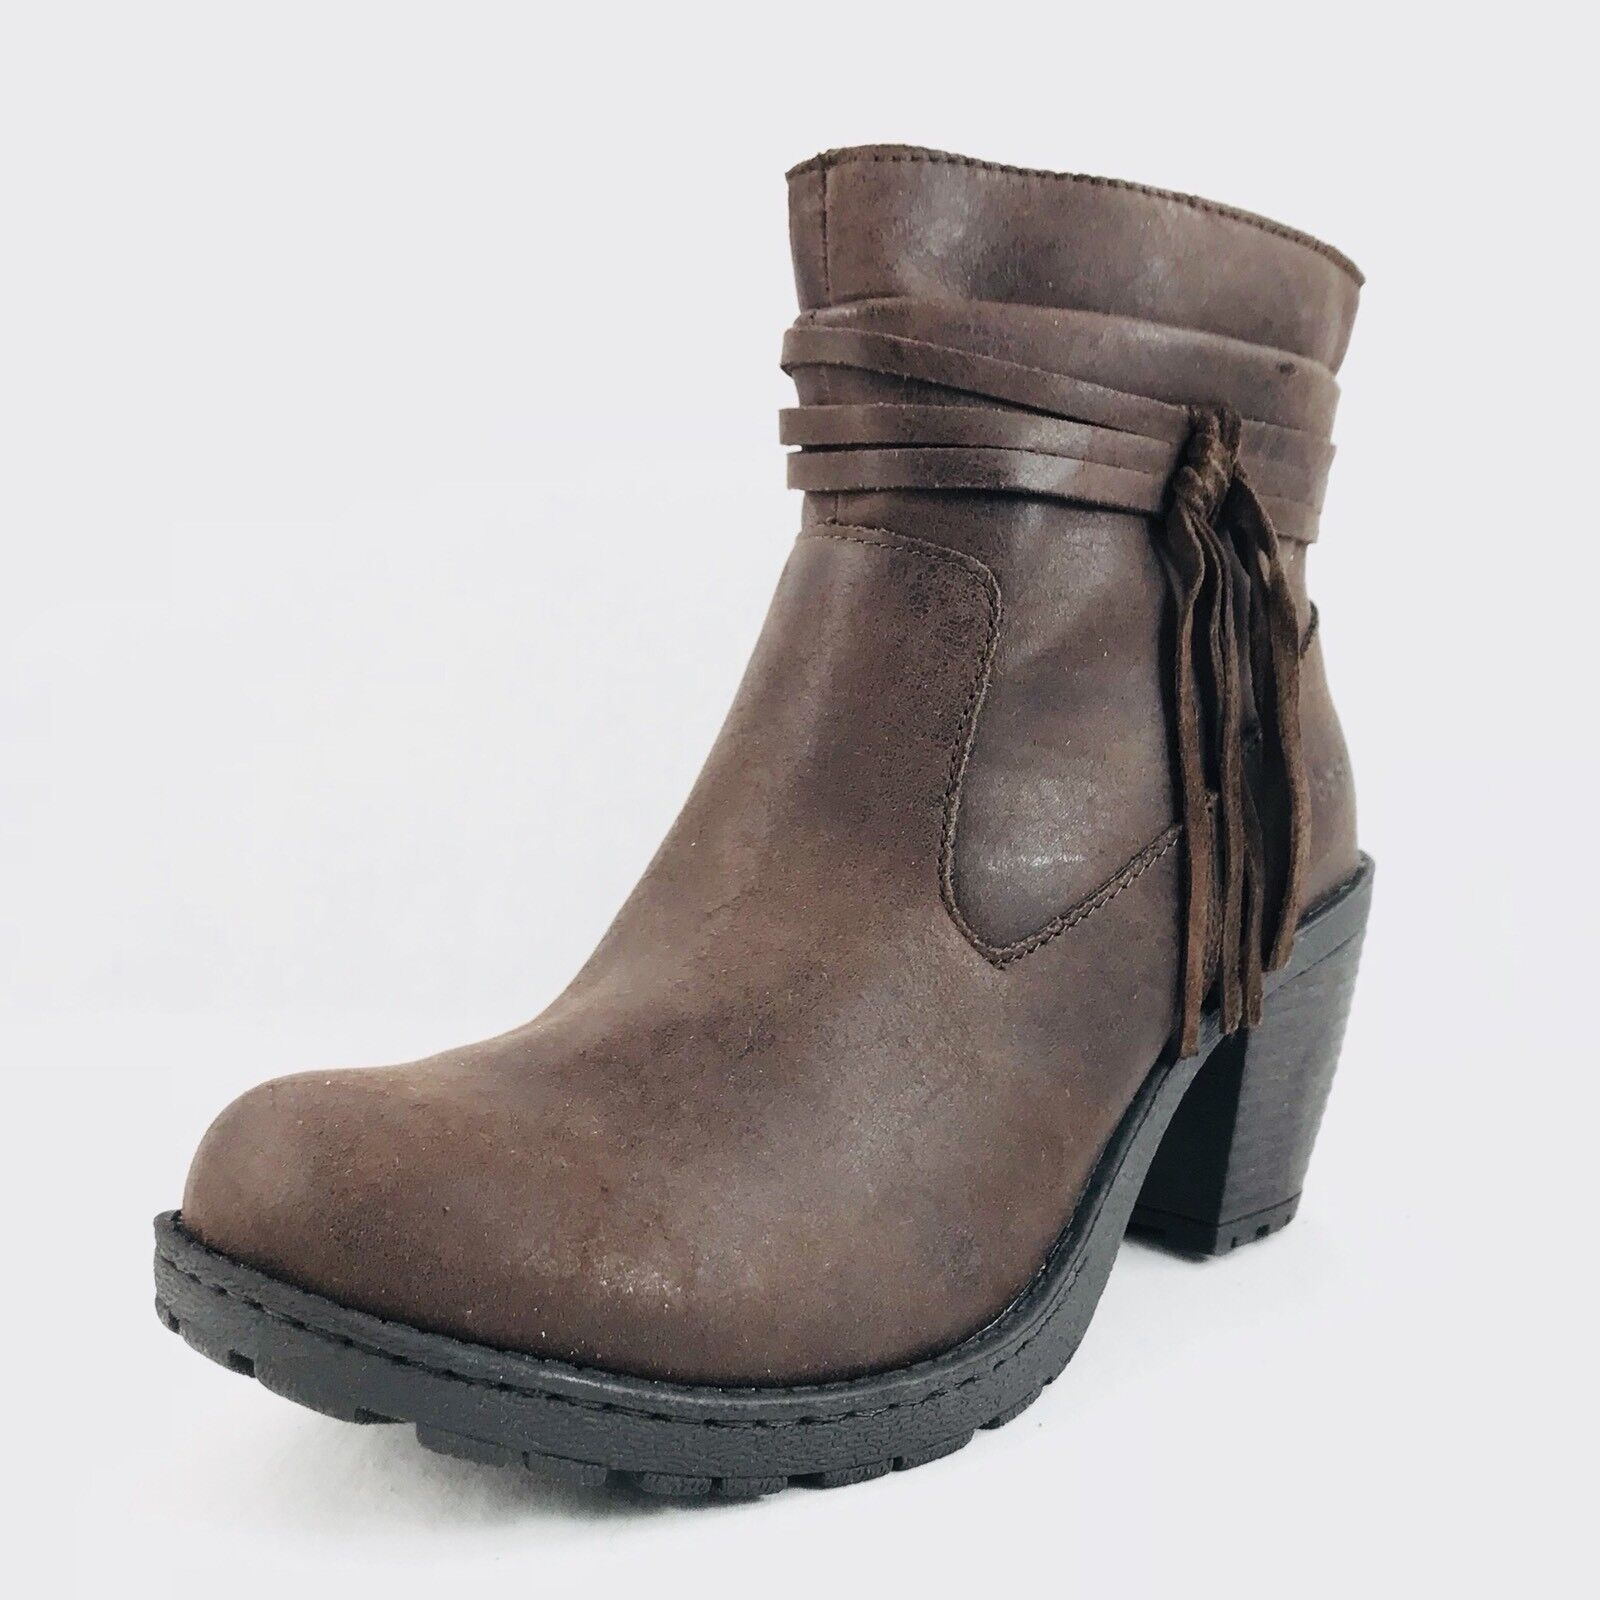 Born Concepts B.O.C. Alicudi Tassle Ankle Bootie Brown Womens Sz 8.5